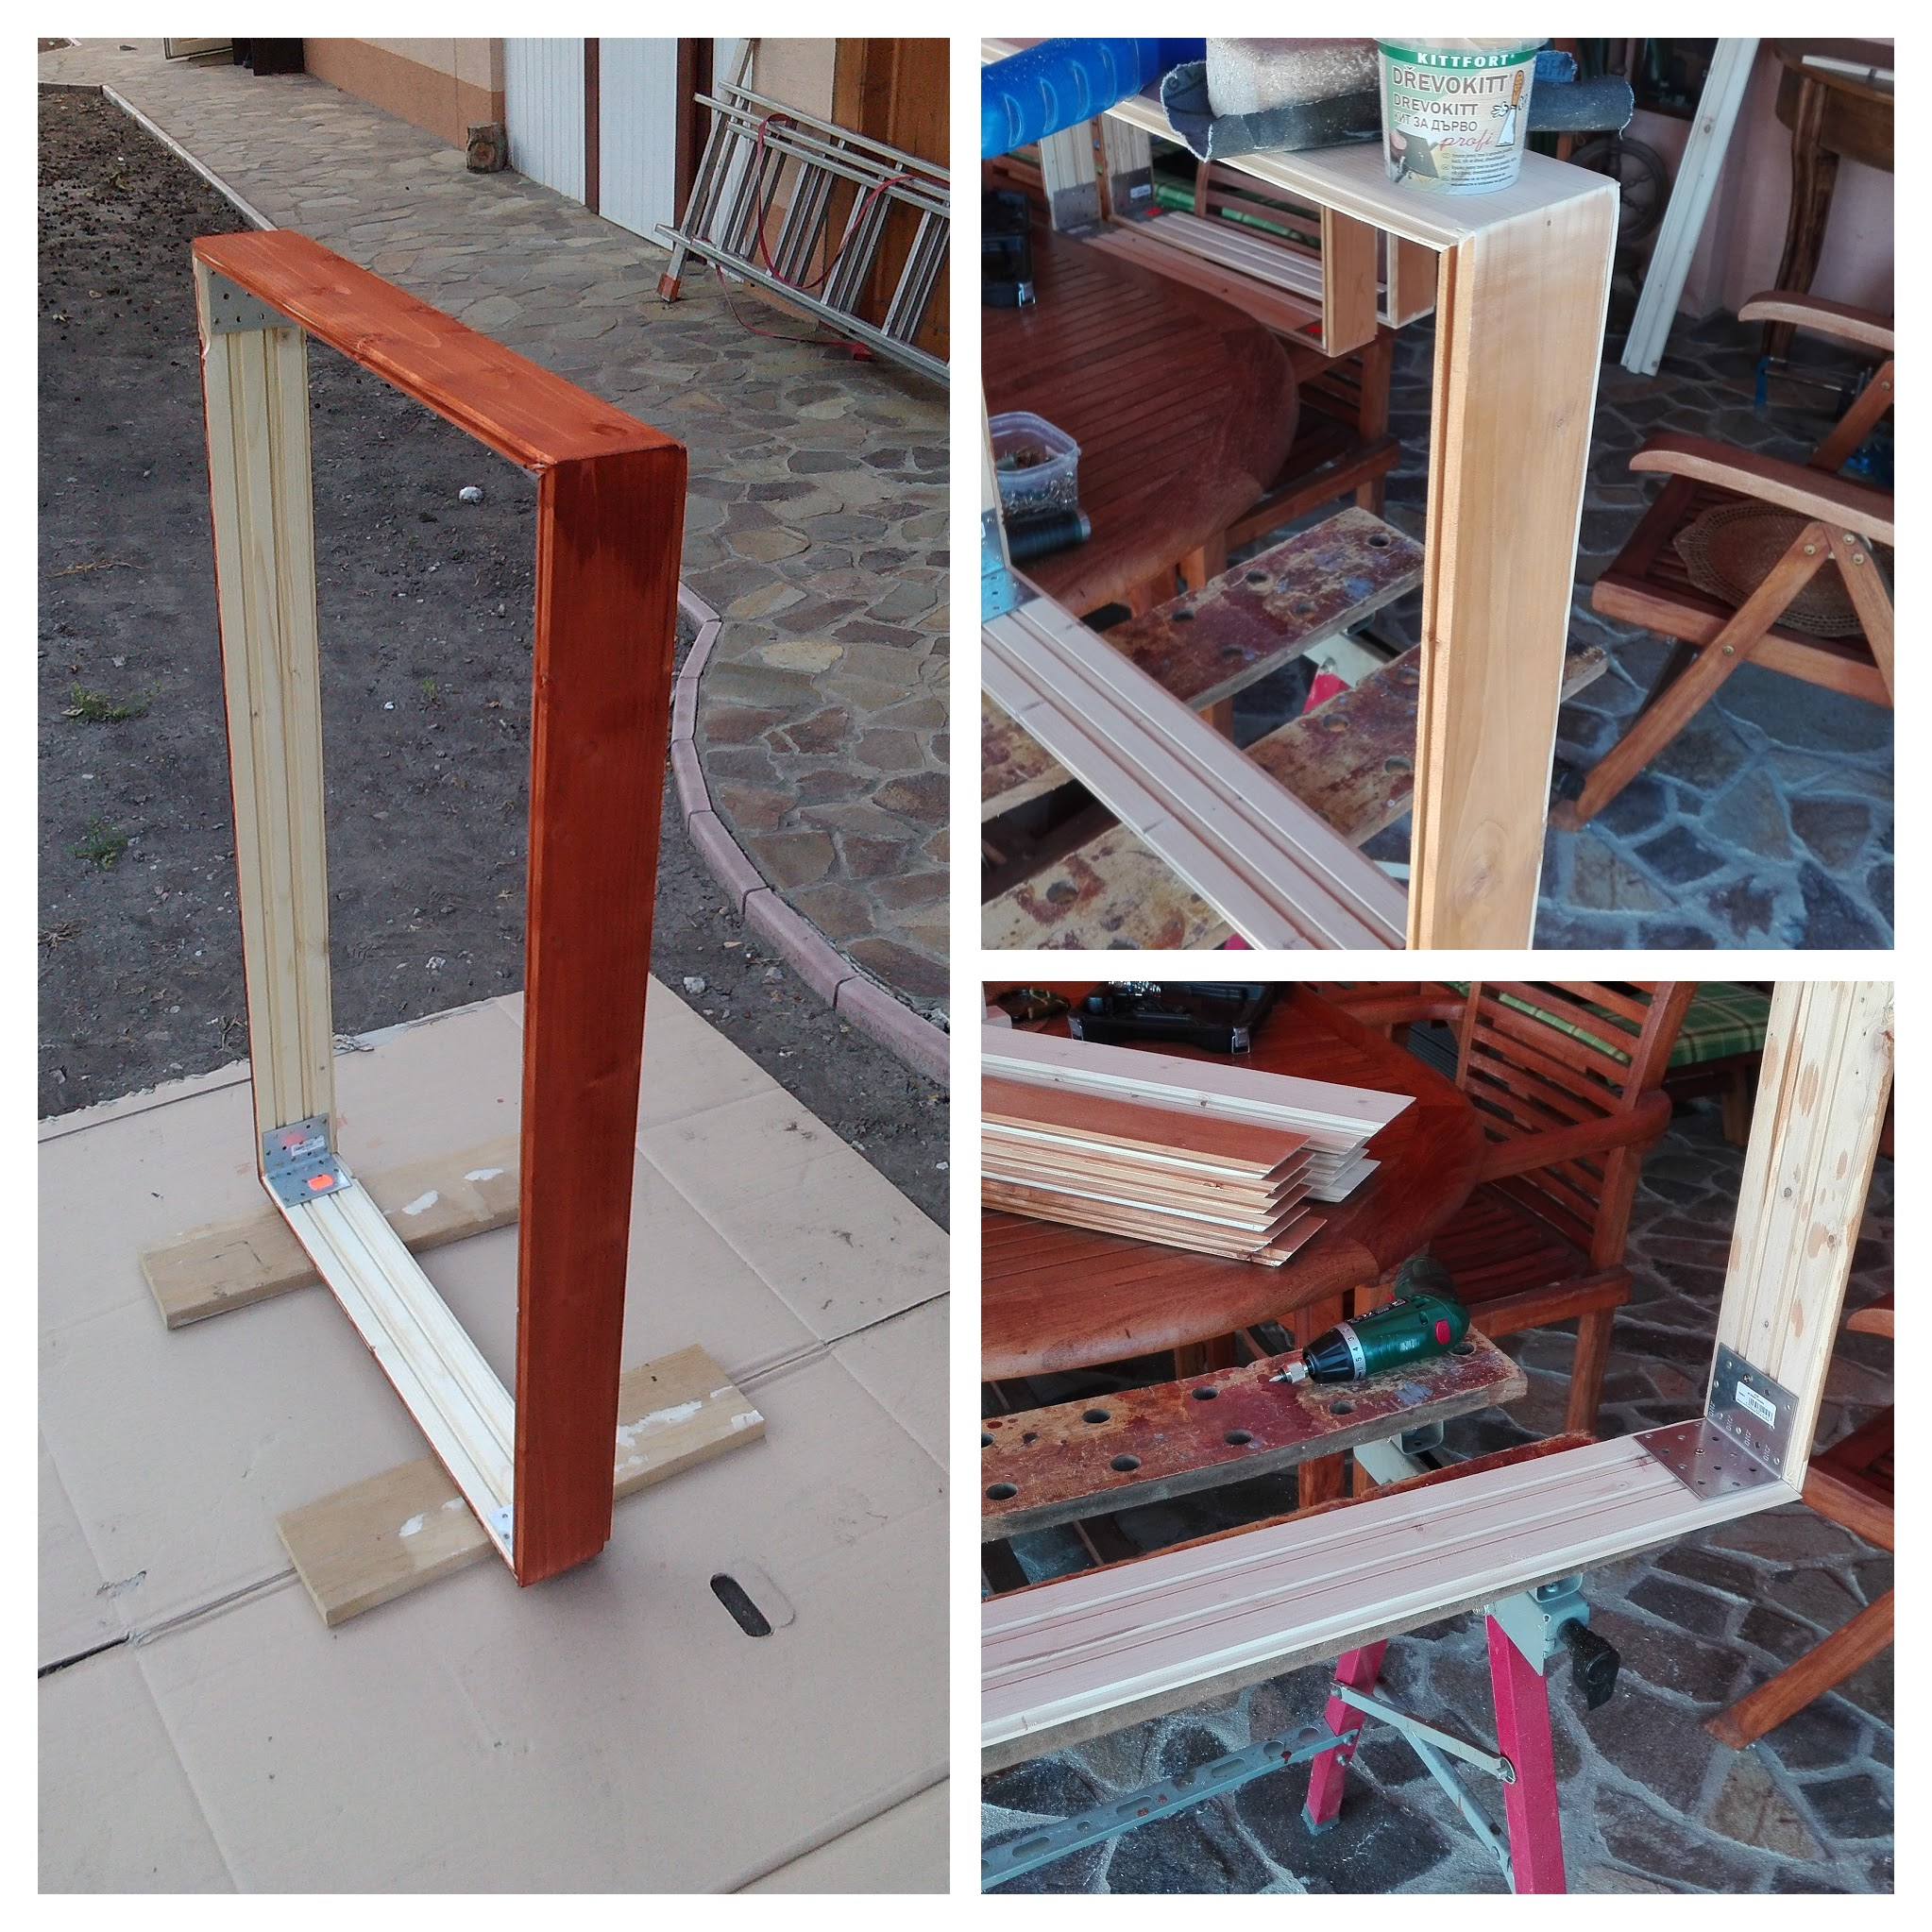 Home studio DYI Acoustic panel side frame in progress